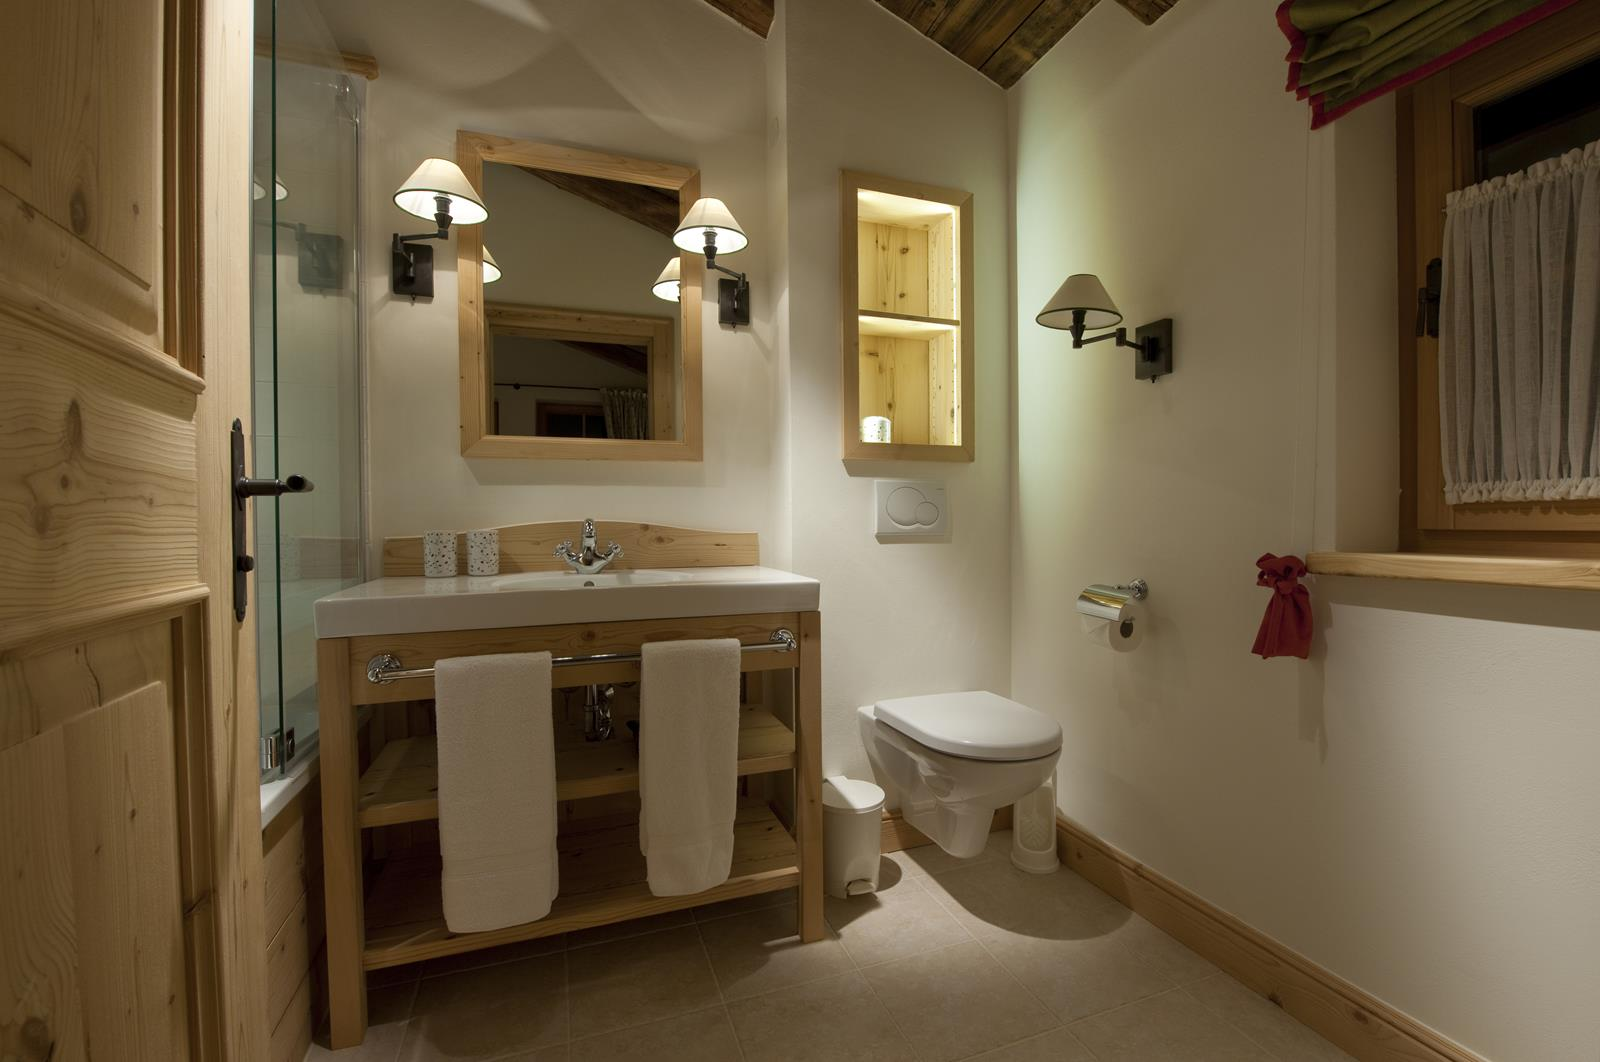 chalet-antoinette-bathroom5-2